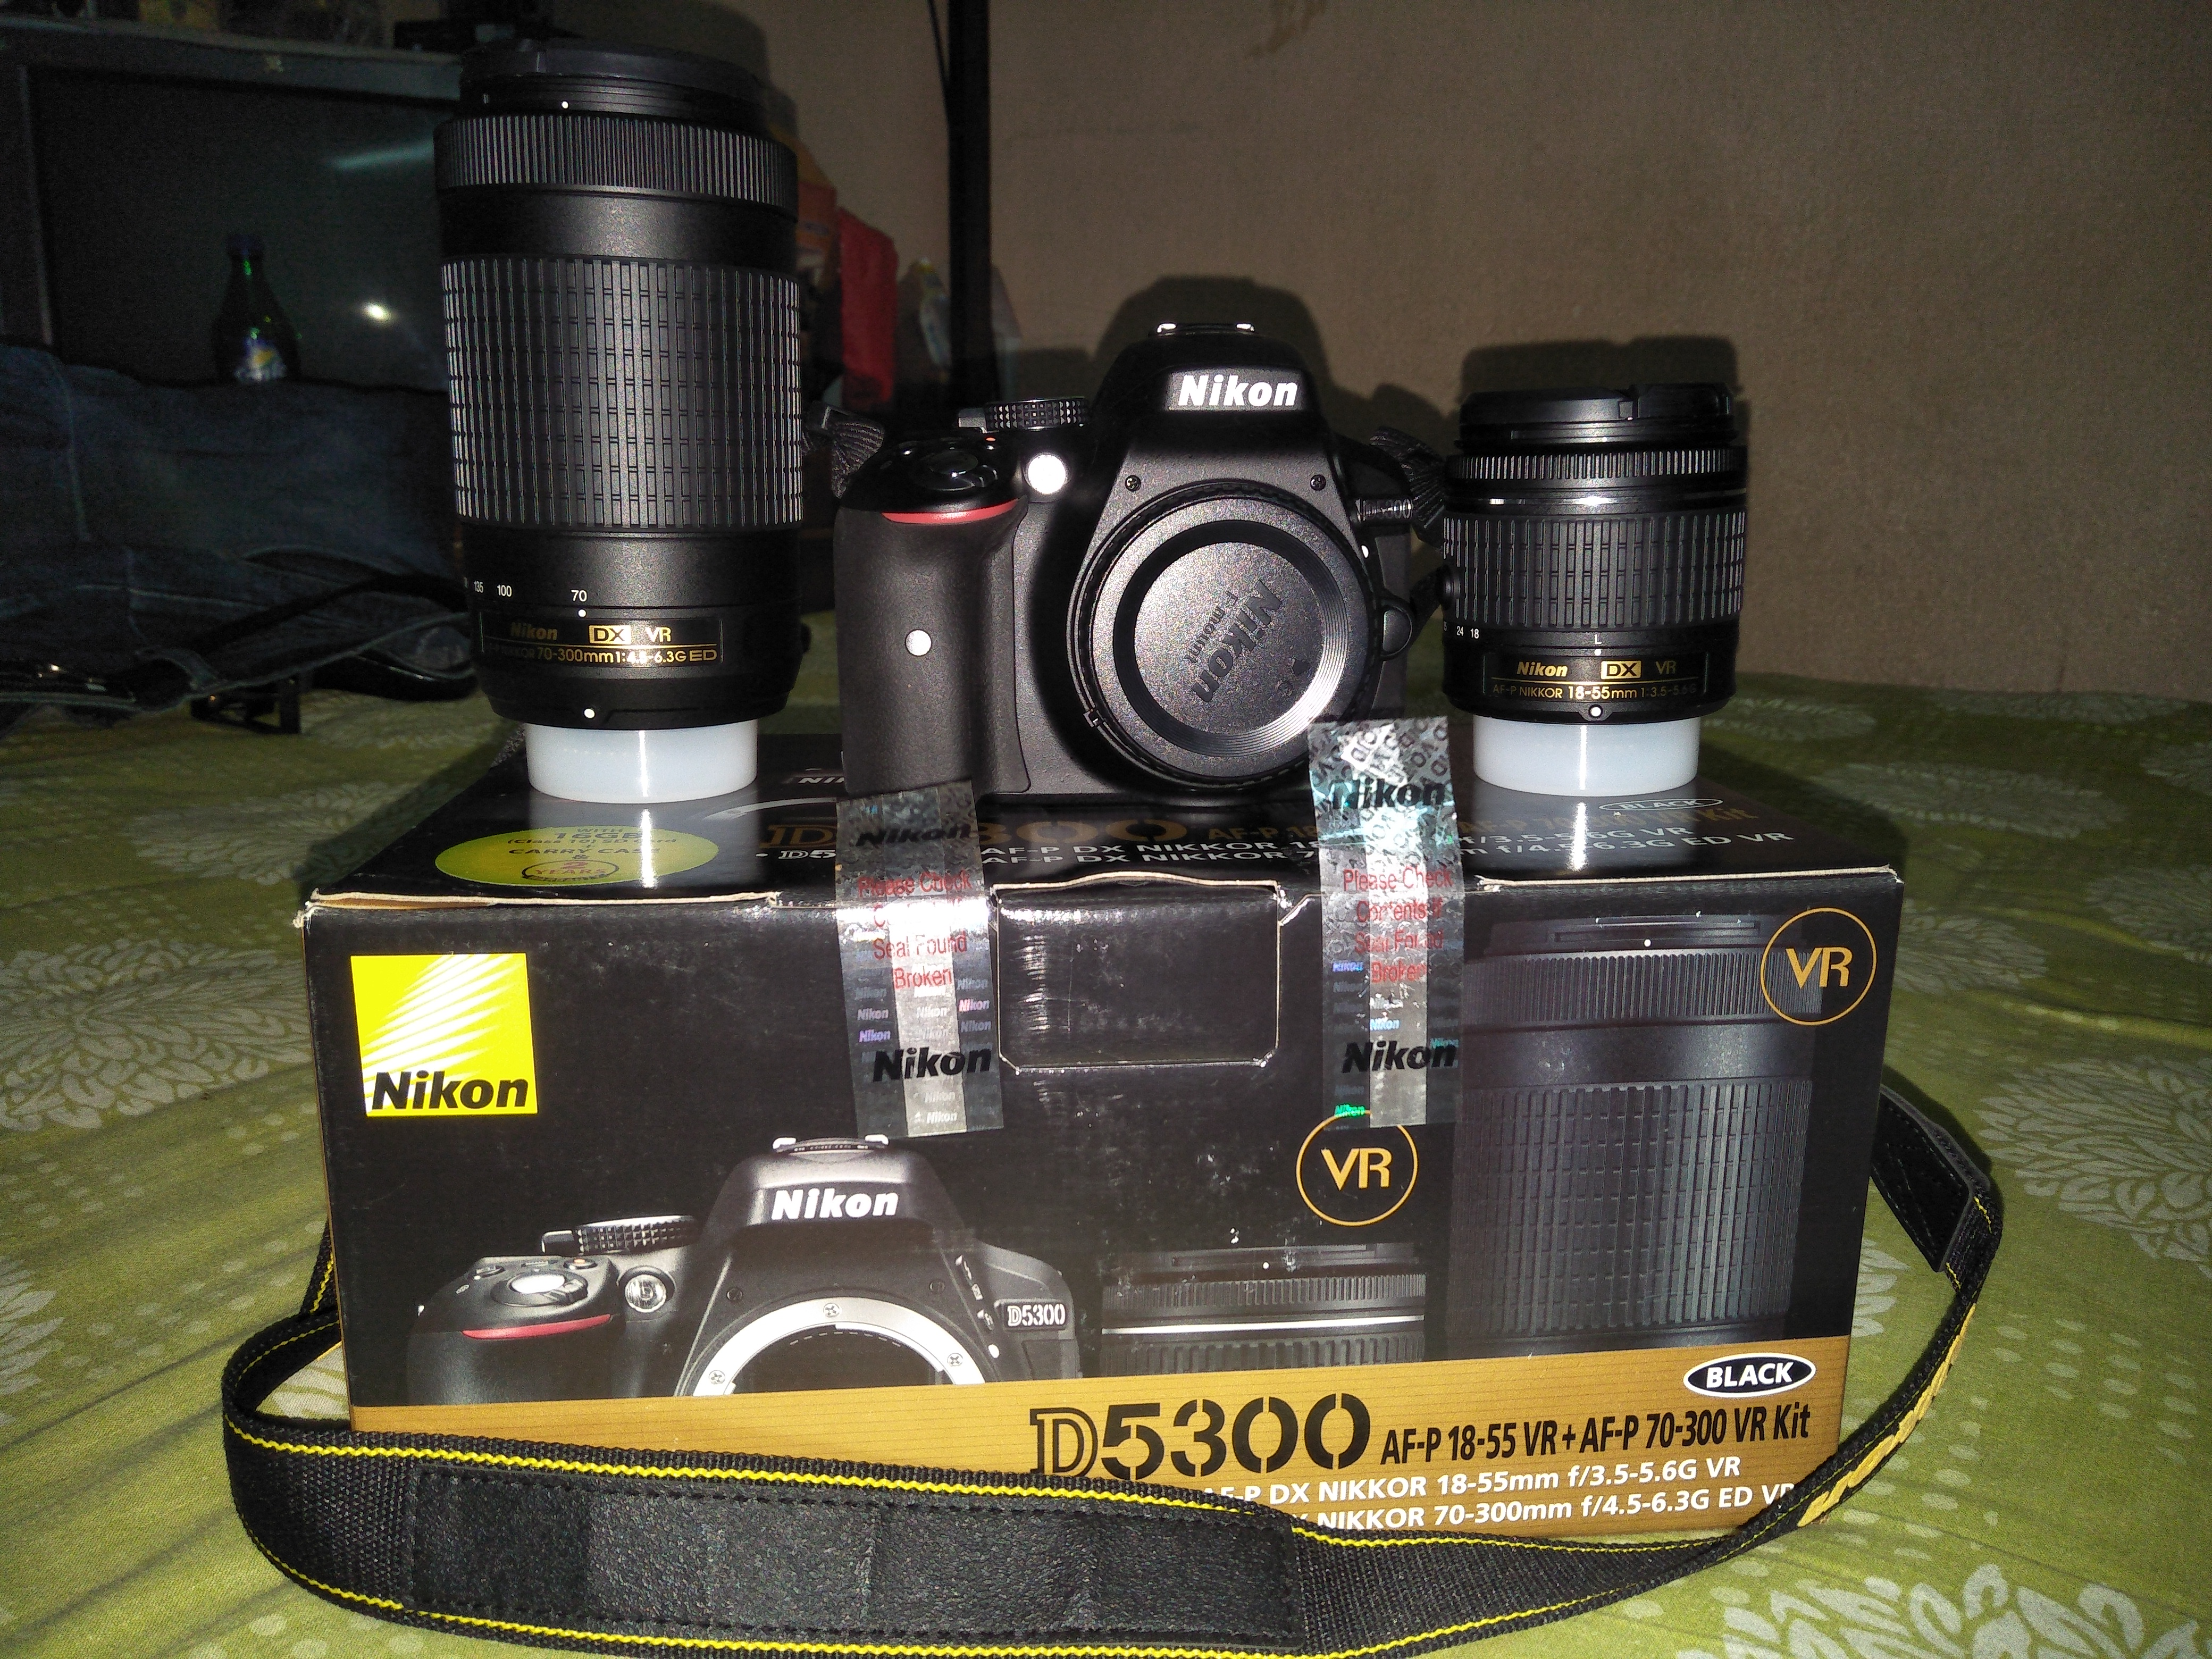 Nikon D5300dual Af P Lens Must Buy D5300 Dslr Camera Kit 18 55mm Vr 55 70 300 Dual It Is A Great Value Of Money For Beginnersit Have Different Types Shutterseed 1 60 4000